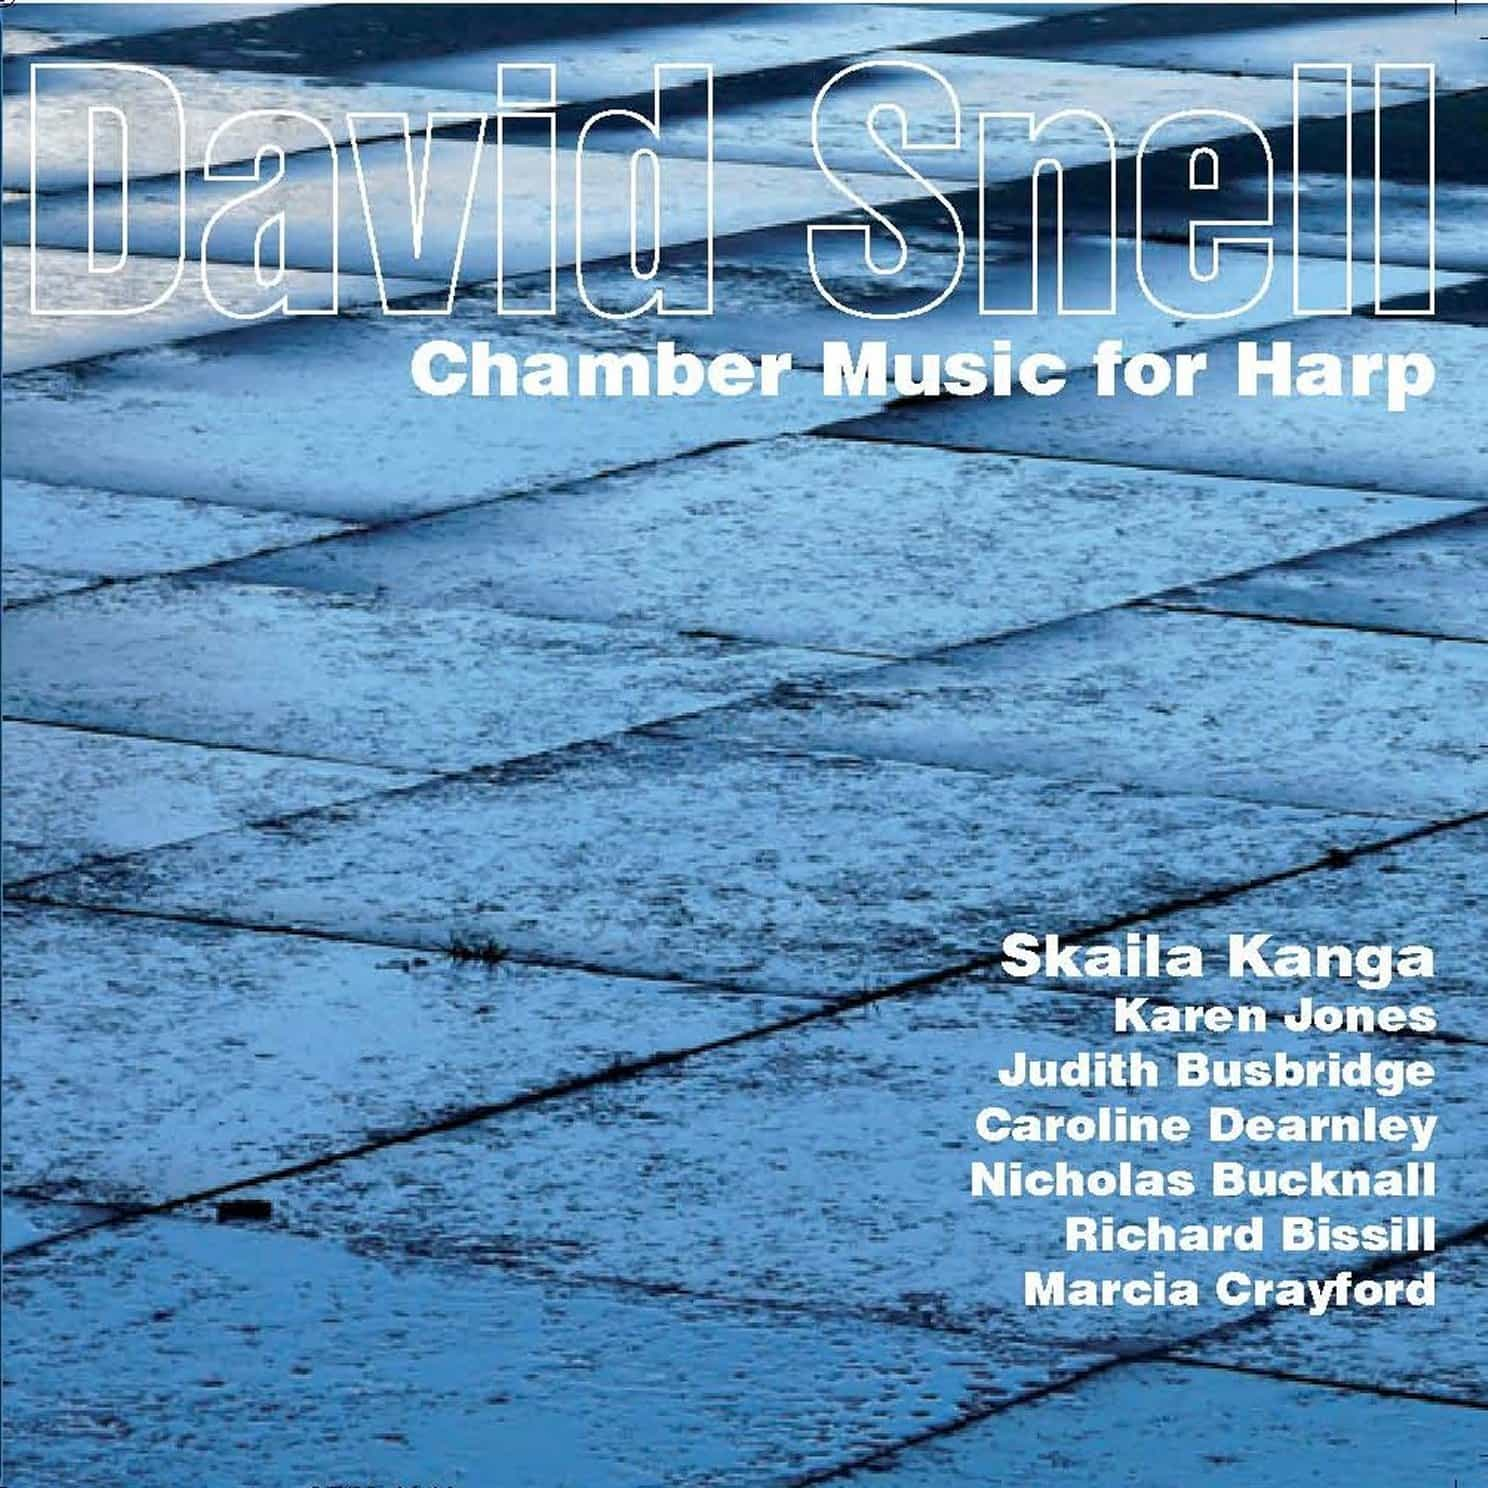 David Snell: Chamber Music for Harp